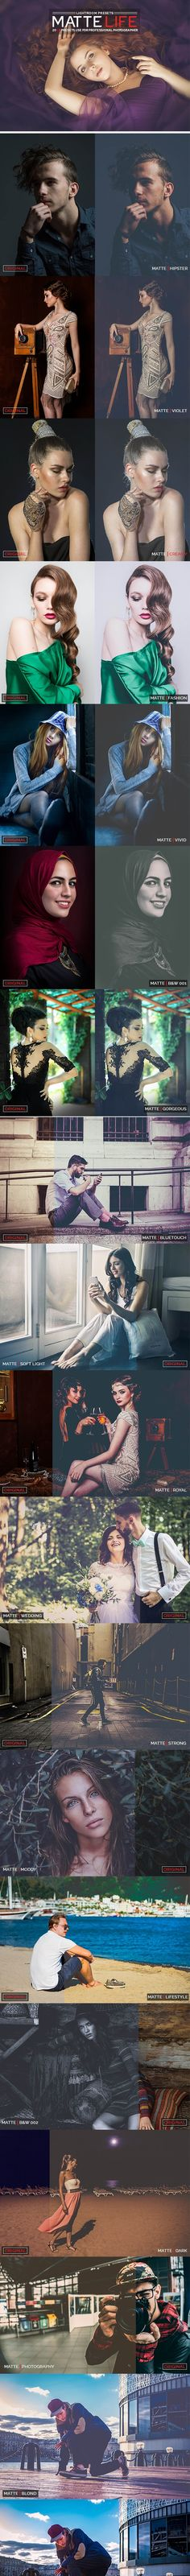 20 Matte Life Lightroom Presets — LRTemplate #fashion matte #photography effect Professional Lightroom Presets, Premium Wordpress Themes, Any Images, Photoshop Actions, Professional Photographer, Your Image, Background Images, Clouds, Templates